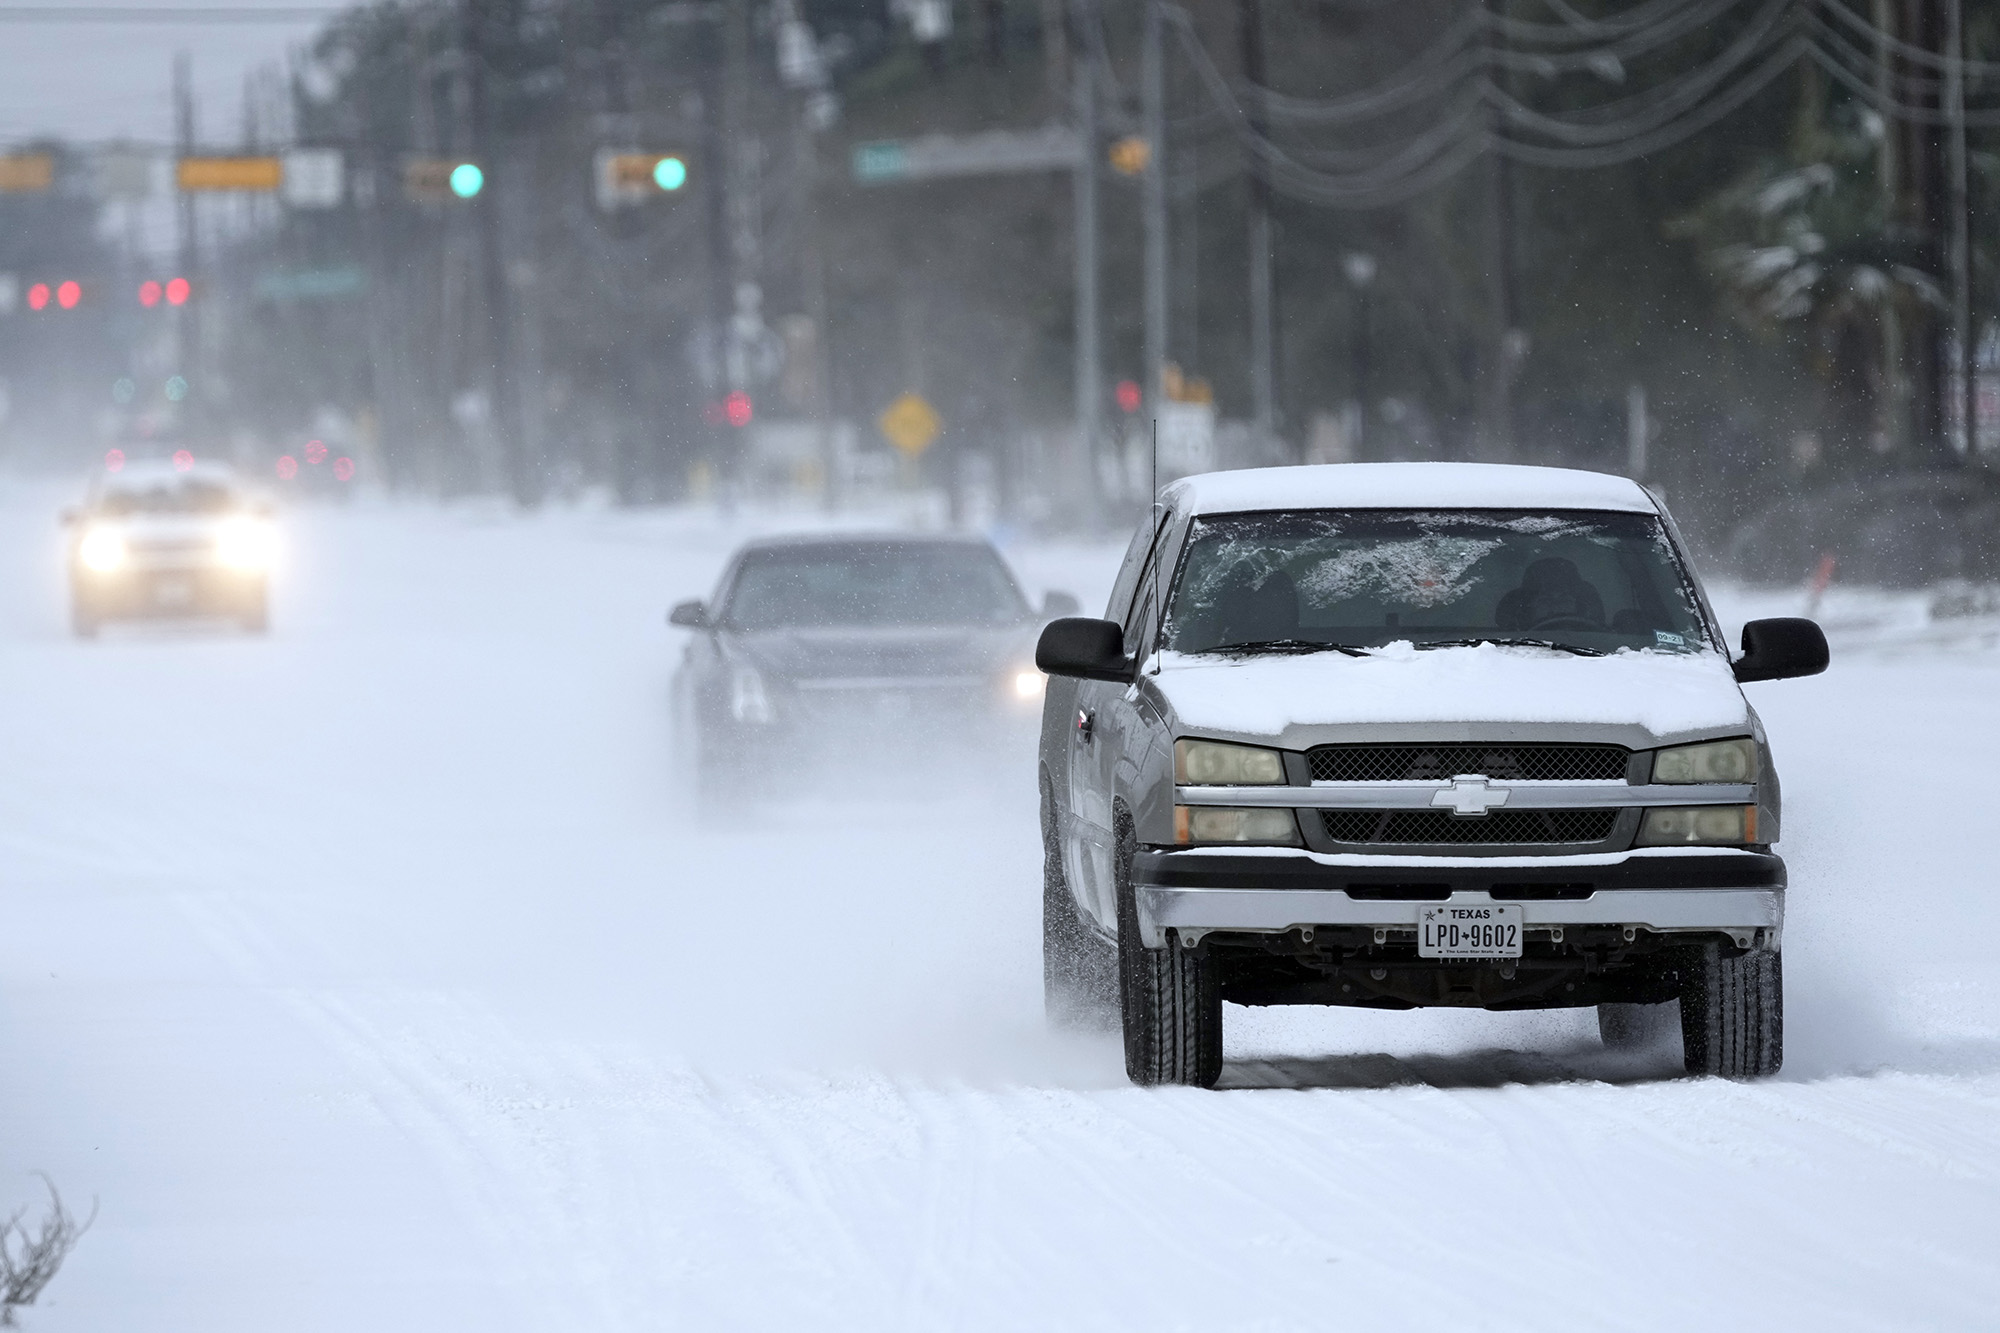 Vehicles drive on snow and sleet-covered roads on Monday, Feb. 15, 2021, in Spring, Texas.